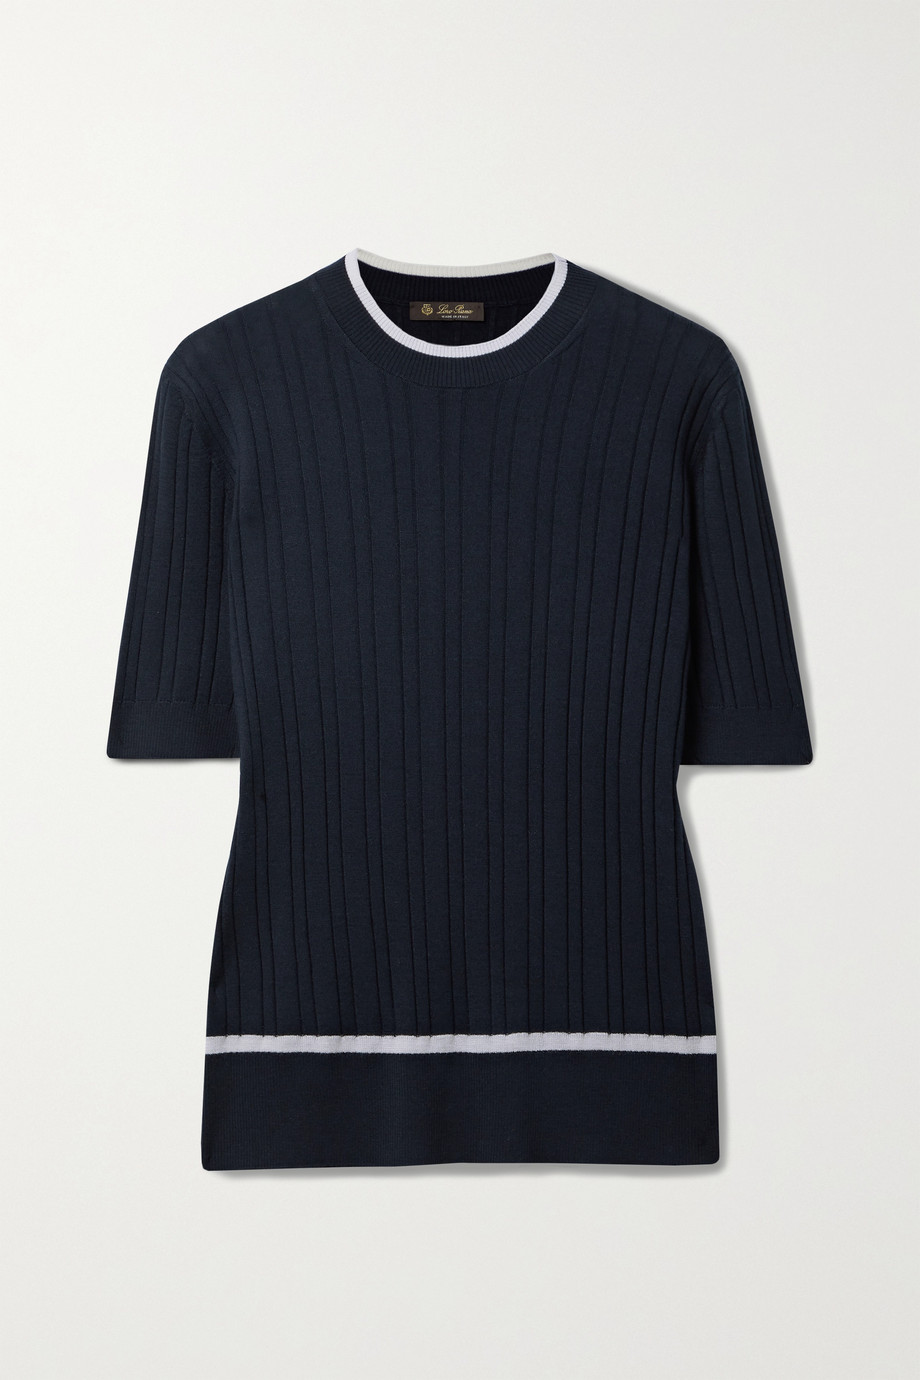 Loro Piana Benat ribbed cashmere and silk-blend top